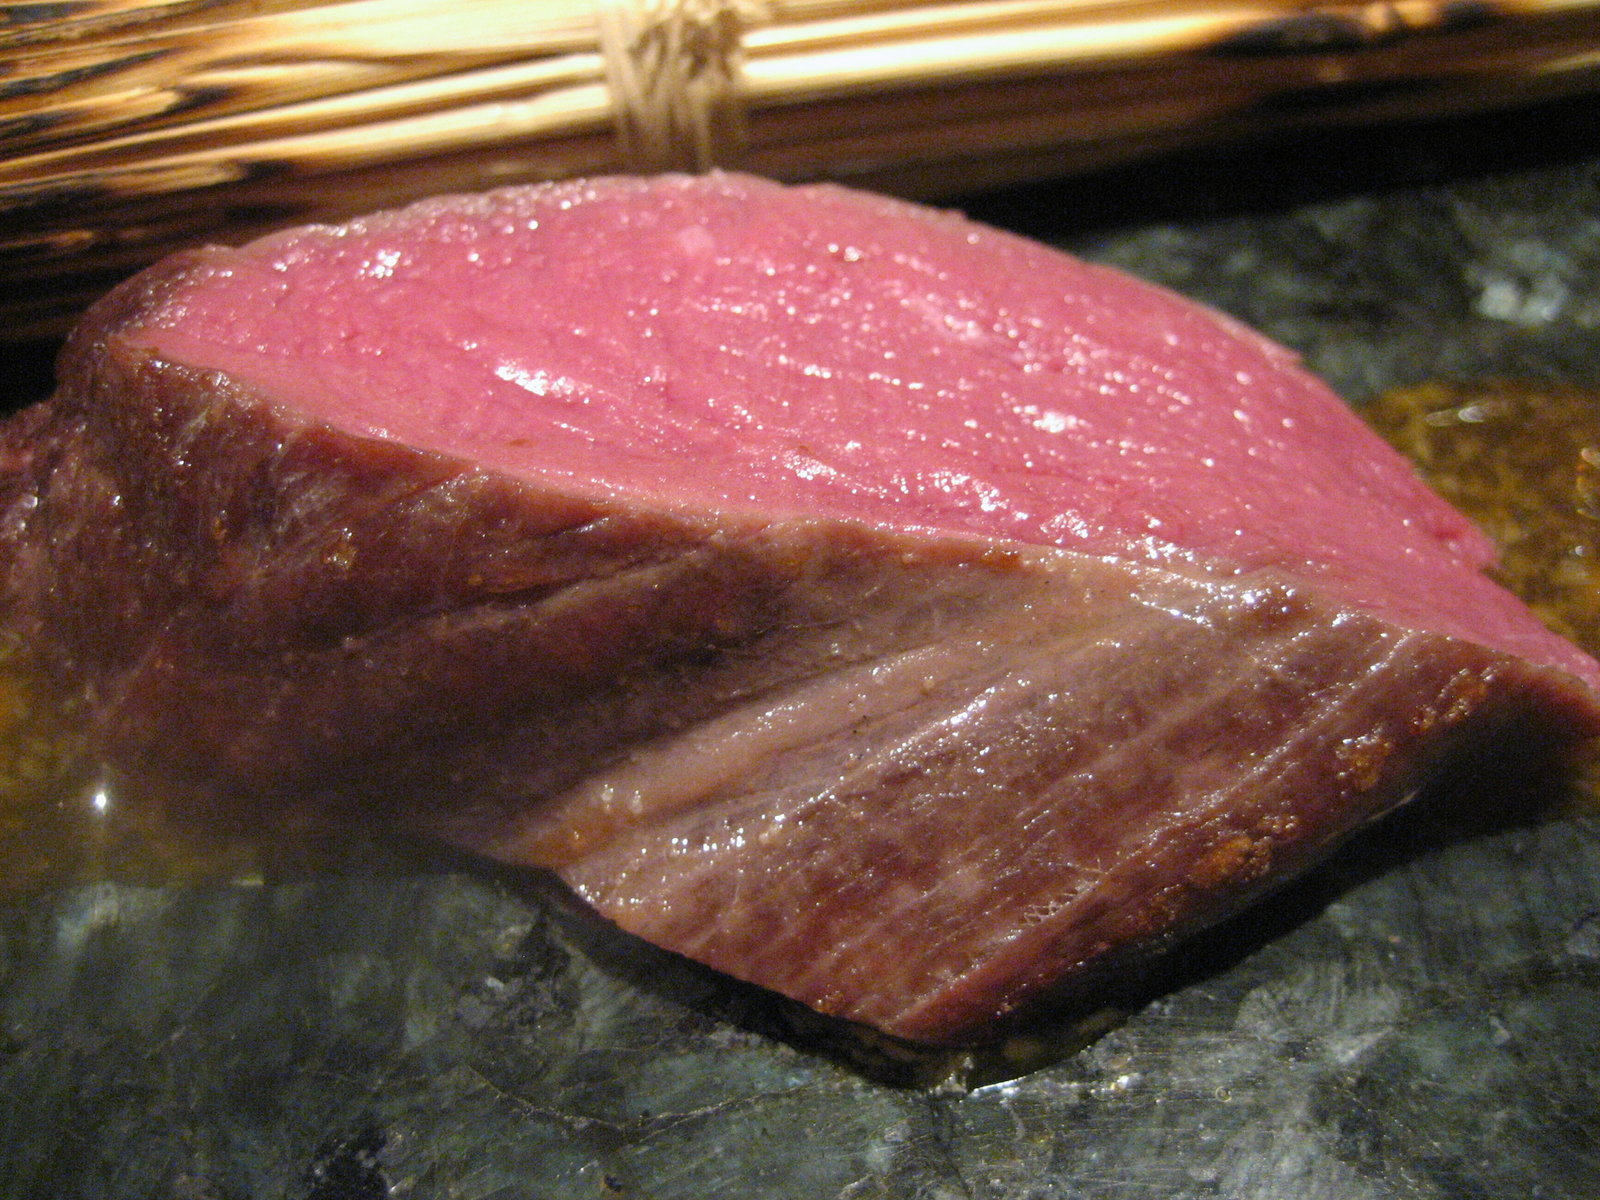 RyuGin - Chef's specialty winter edition, grilled meat of the day